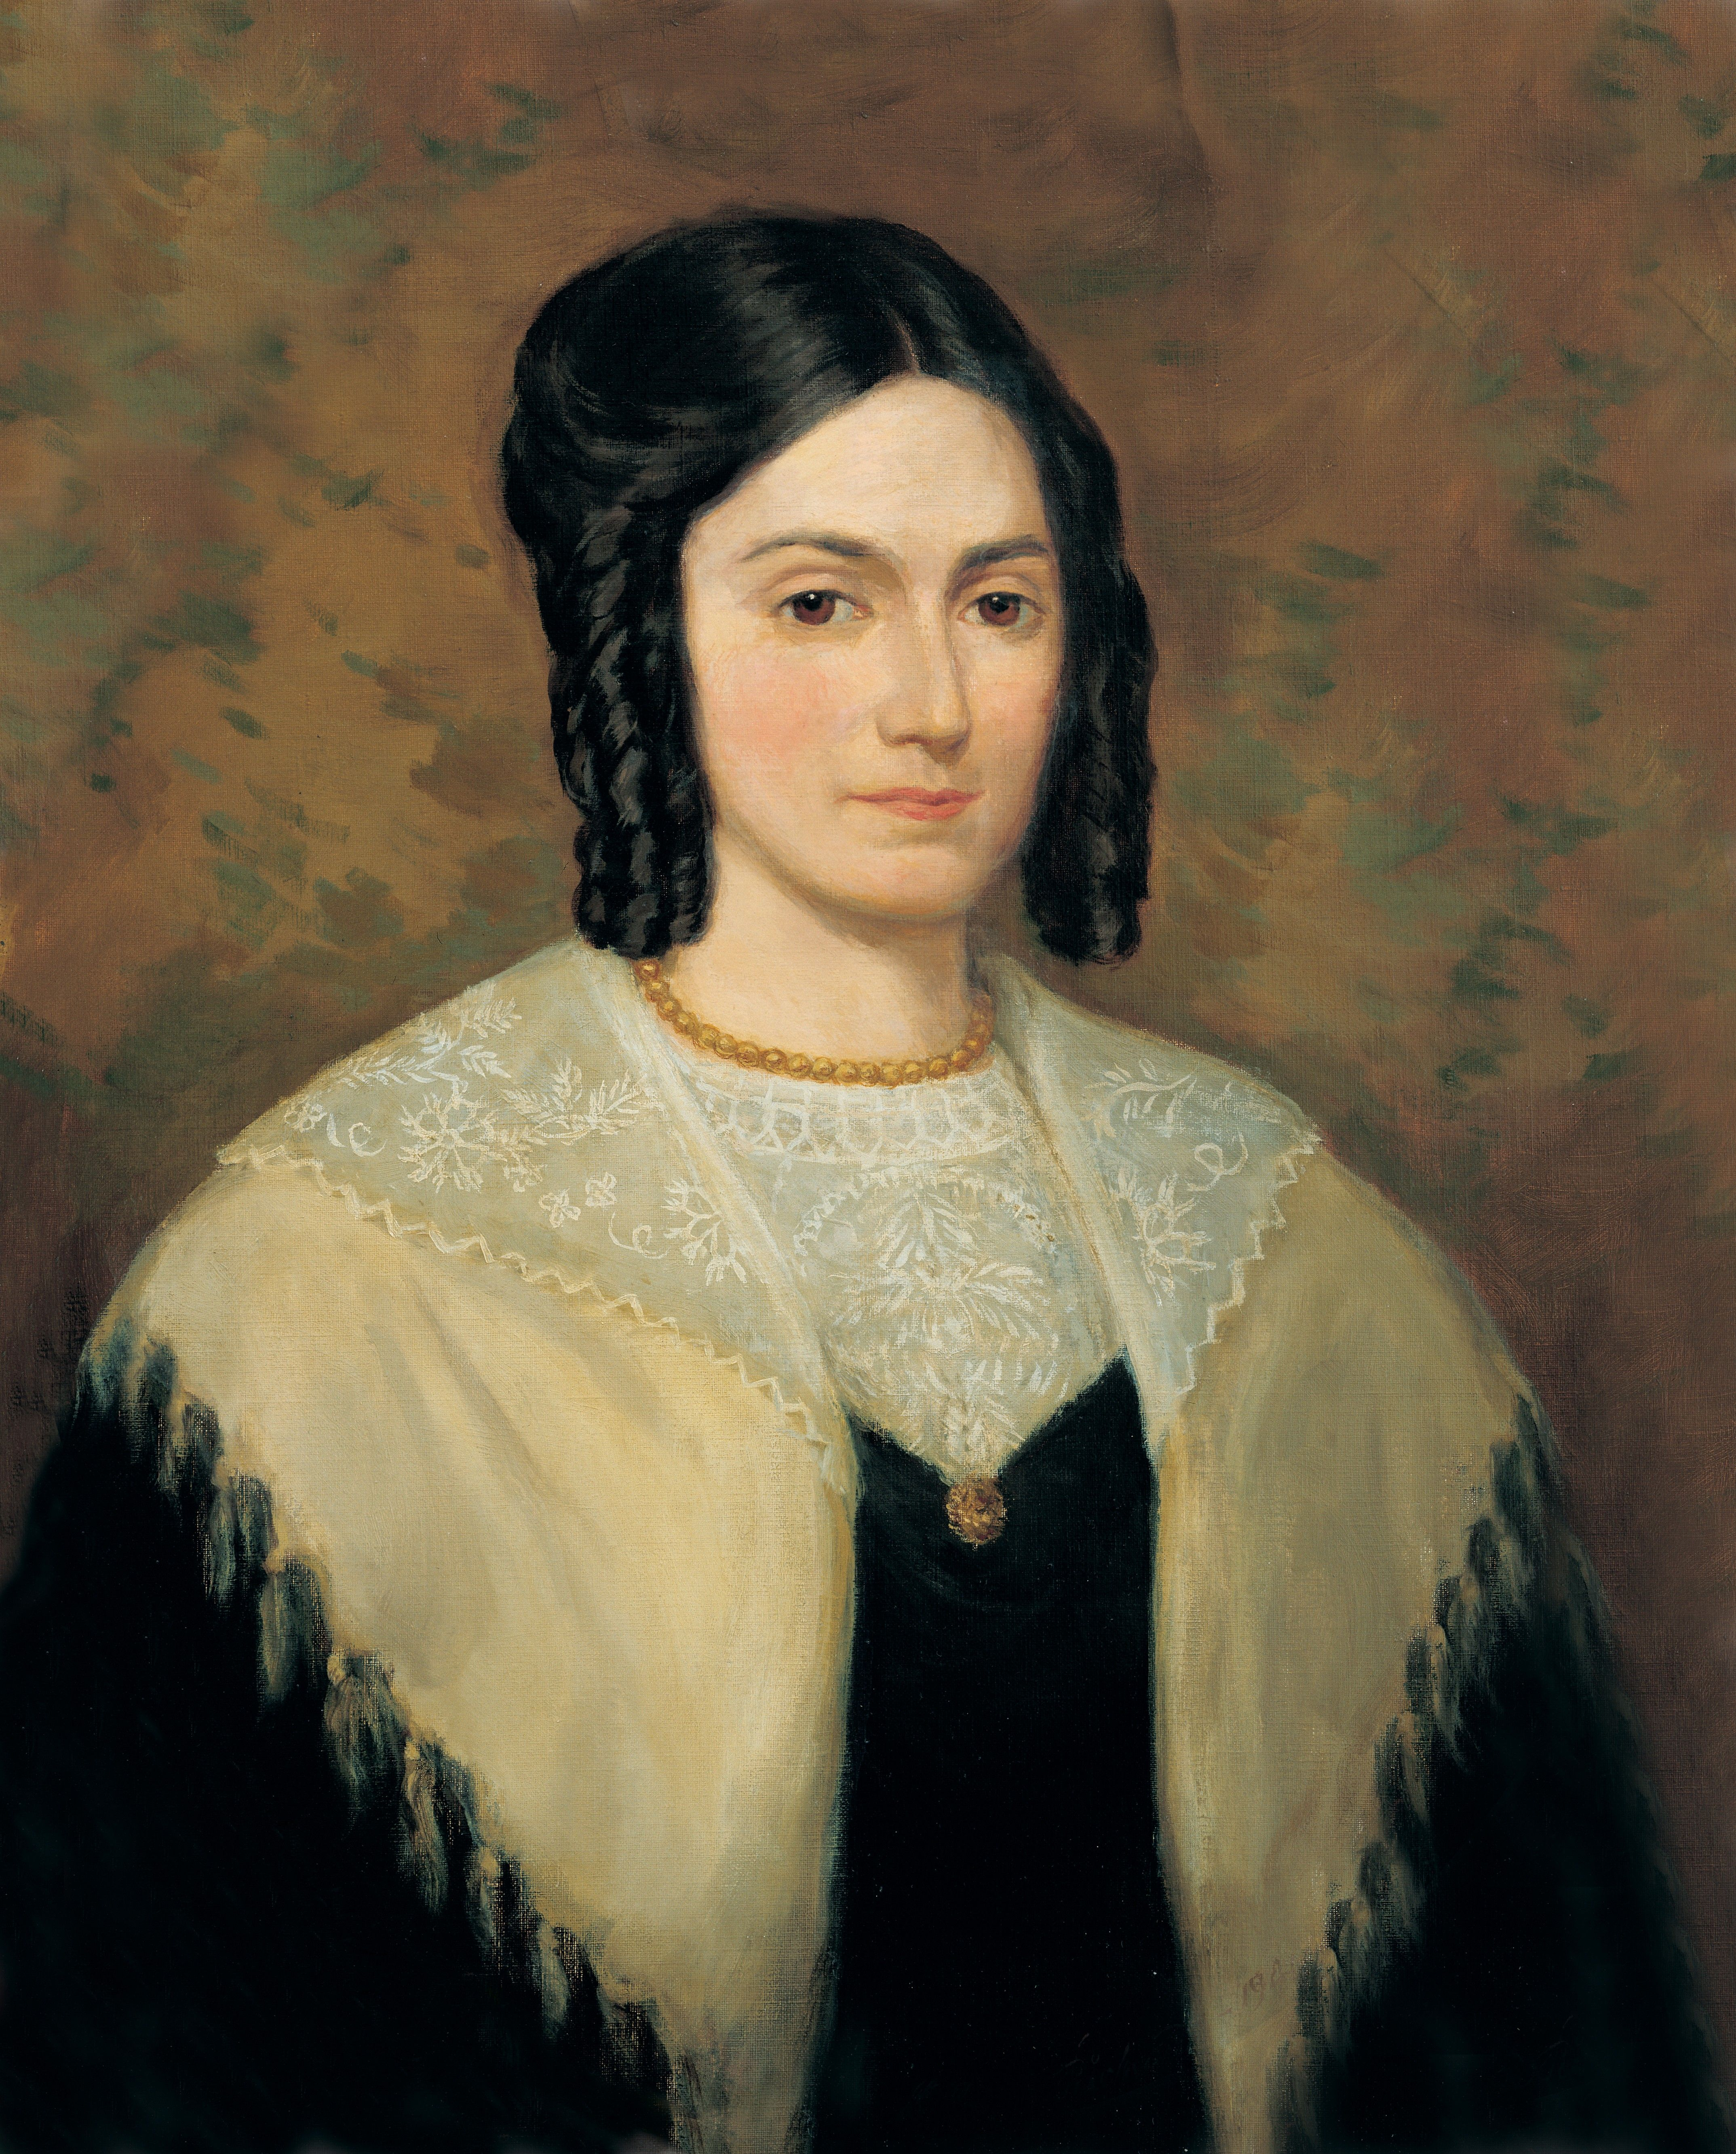 Emma Smith (Emma Hale Smith), by Lee Greene Richards (62509); GAK 405; GAB 88; Primary manual 5-22; Doctrine and Covenants 25. Emma Smith was the first Relief Society General President, serving from 1842 to 1844.